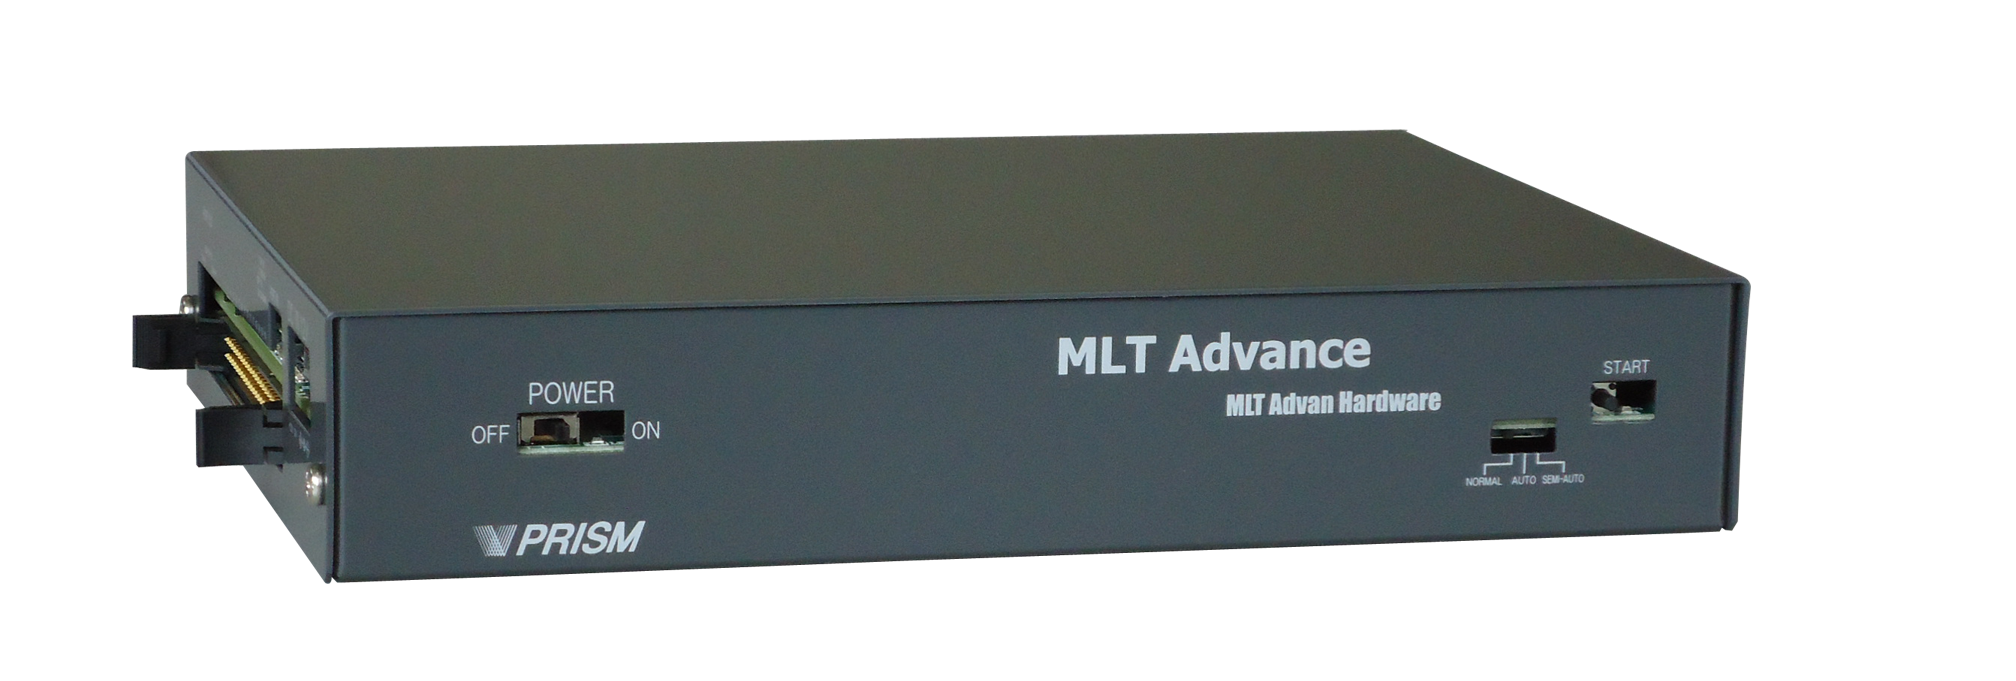 MLT Advance